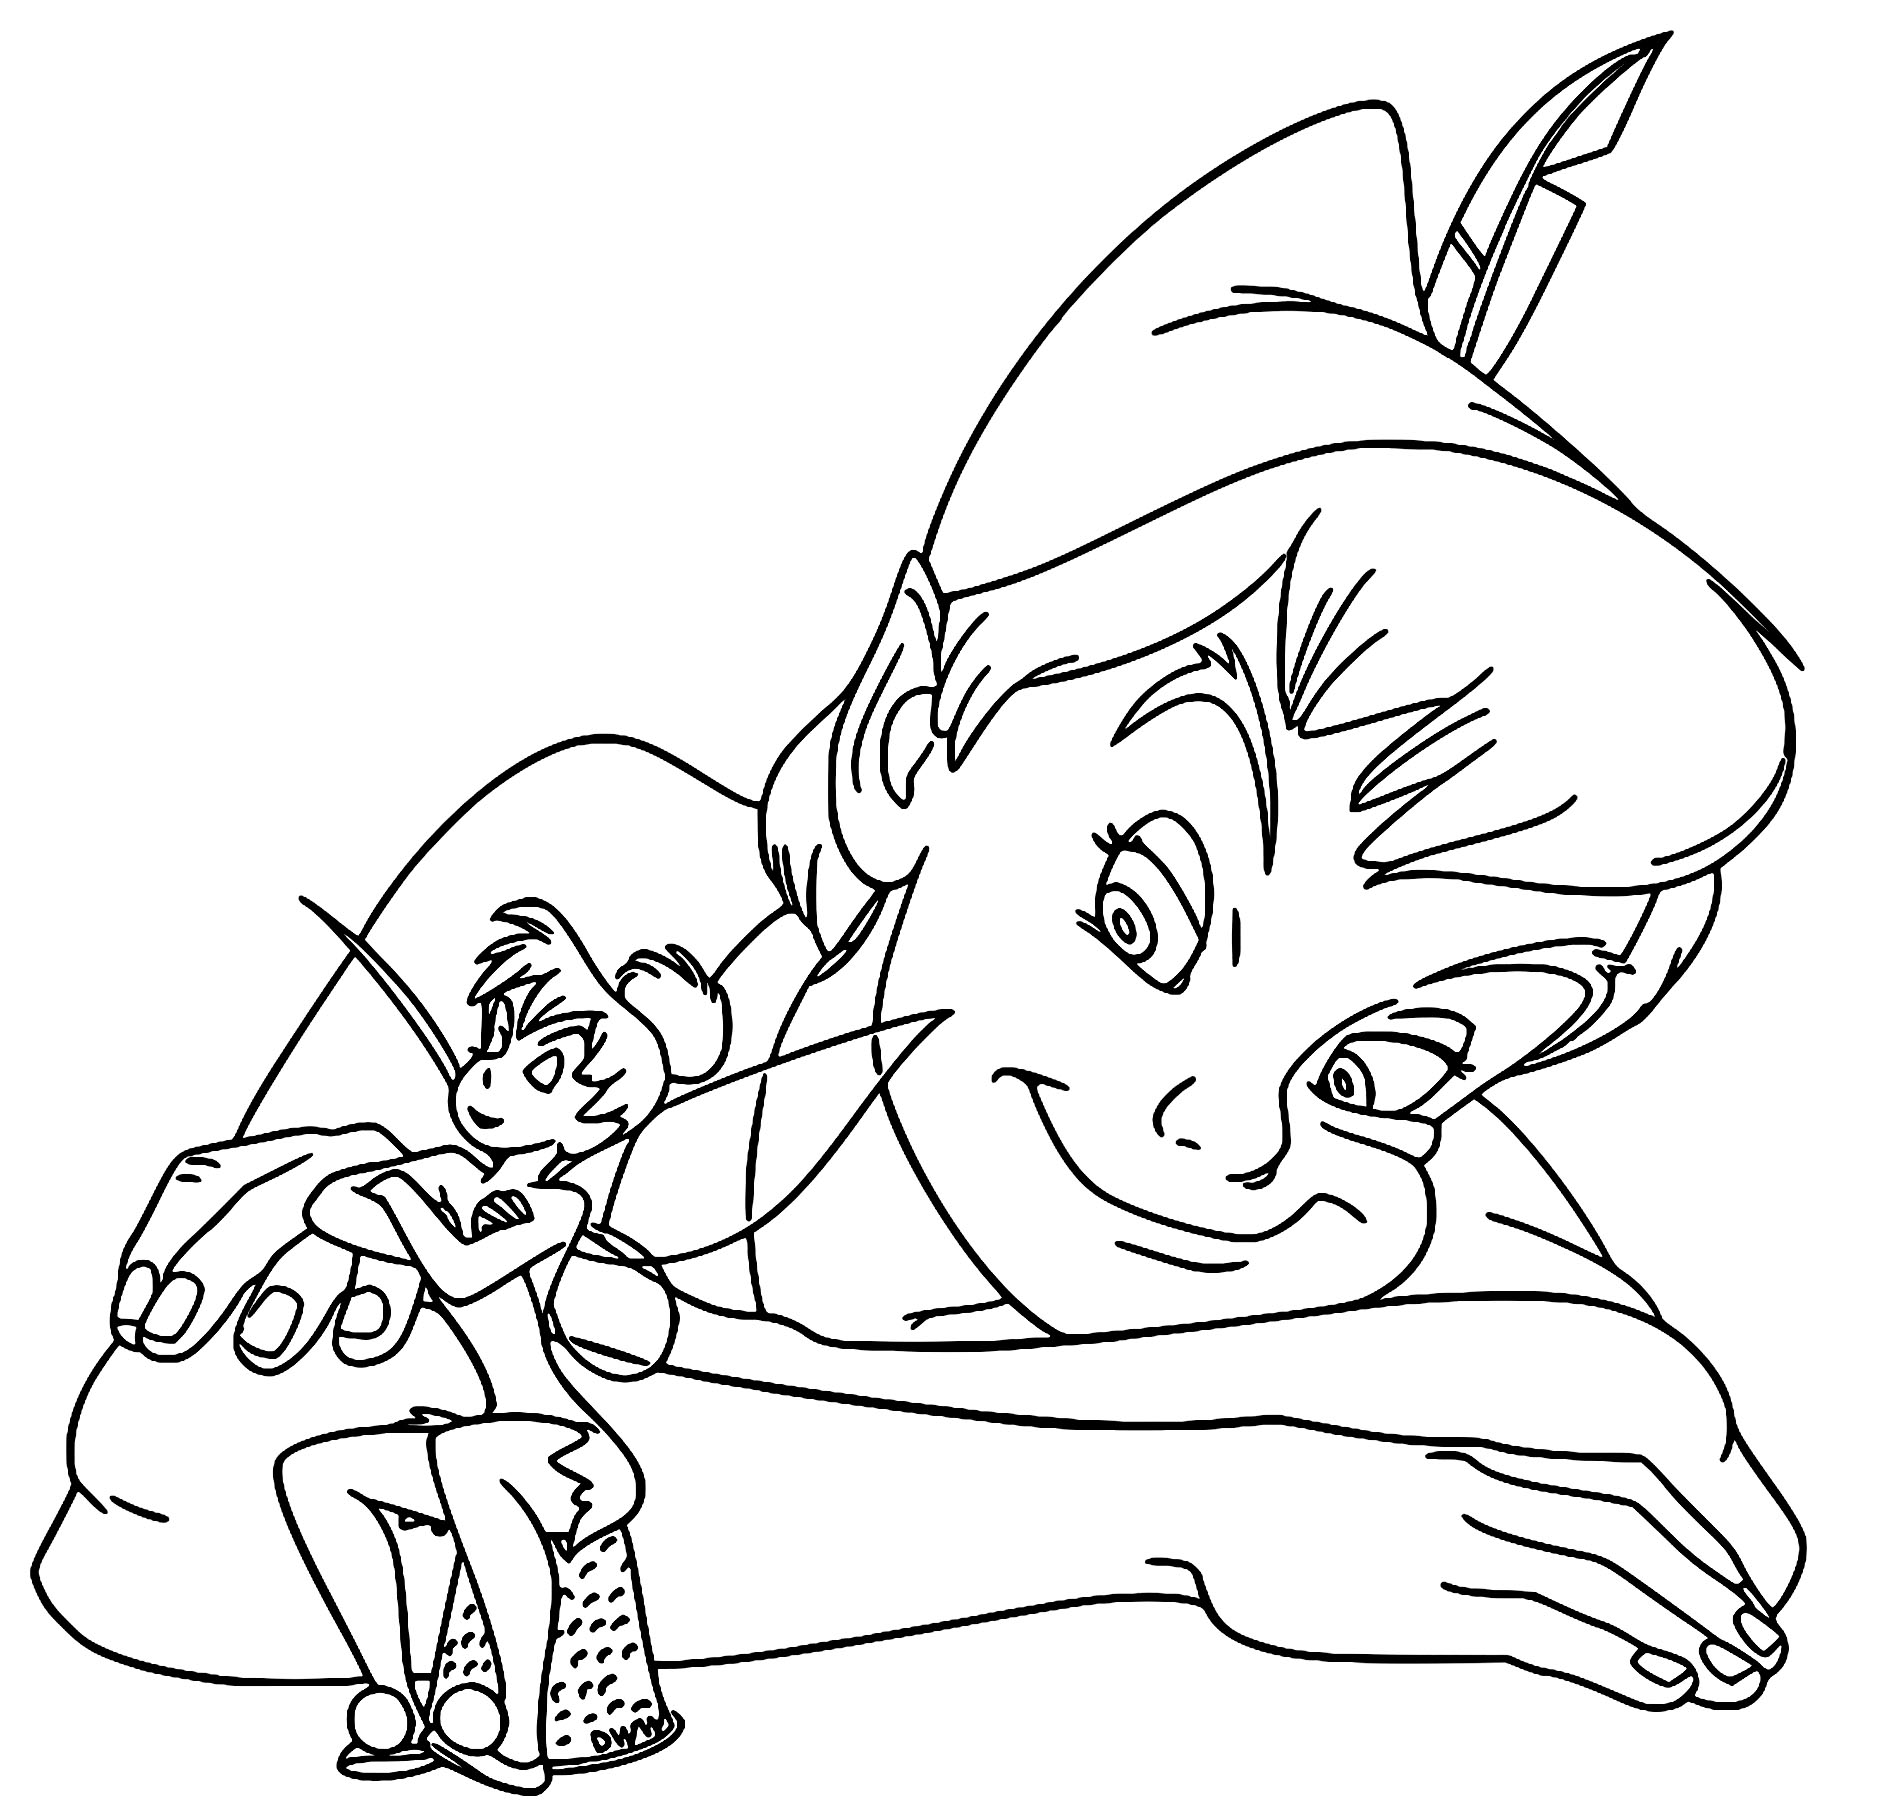 Peter Pan & Tinker Bell Coloring Pages